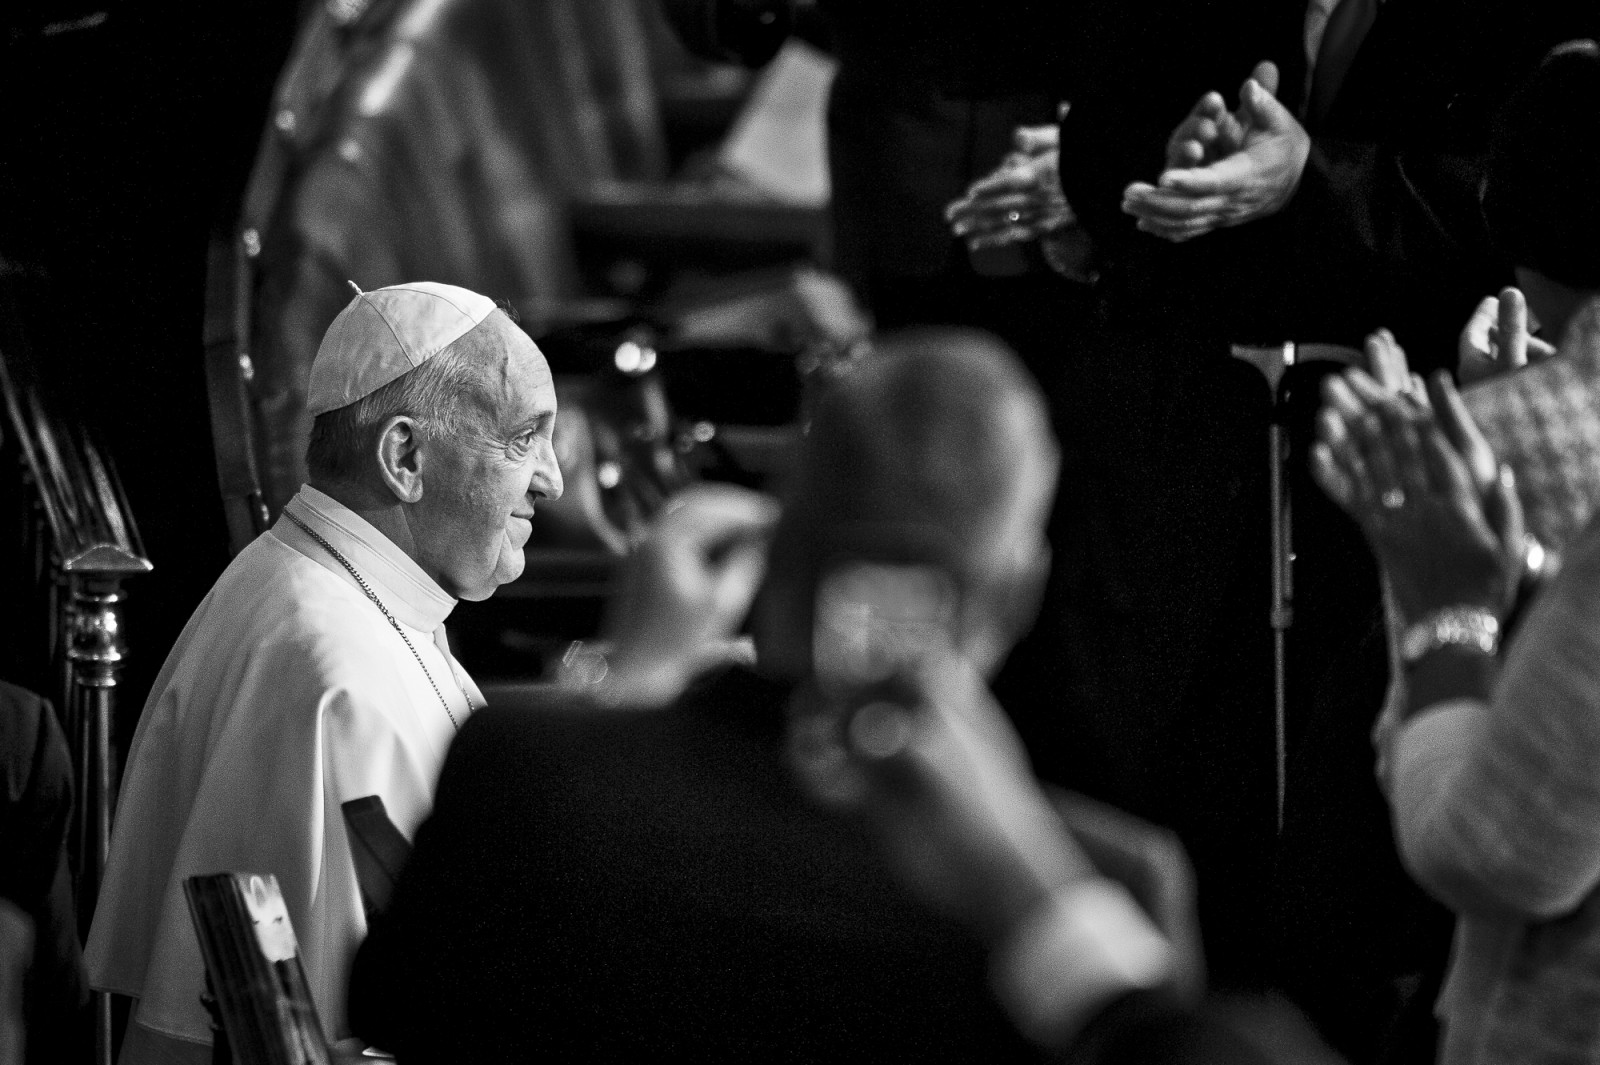 Pope Francis enters the chamber of the House of Representatives as he continues his six-day U.S. tour speaking to a joint meeting of Congress at the U.S. Capitol in Washington, District of Columbia, U.S., on Thursday, Sept. 24, 2015. Credit: Pete Marovich/Bloomberg